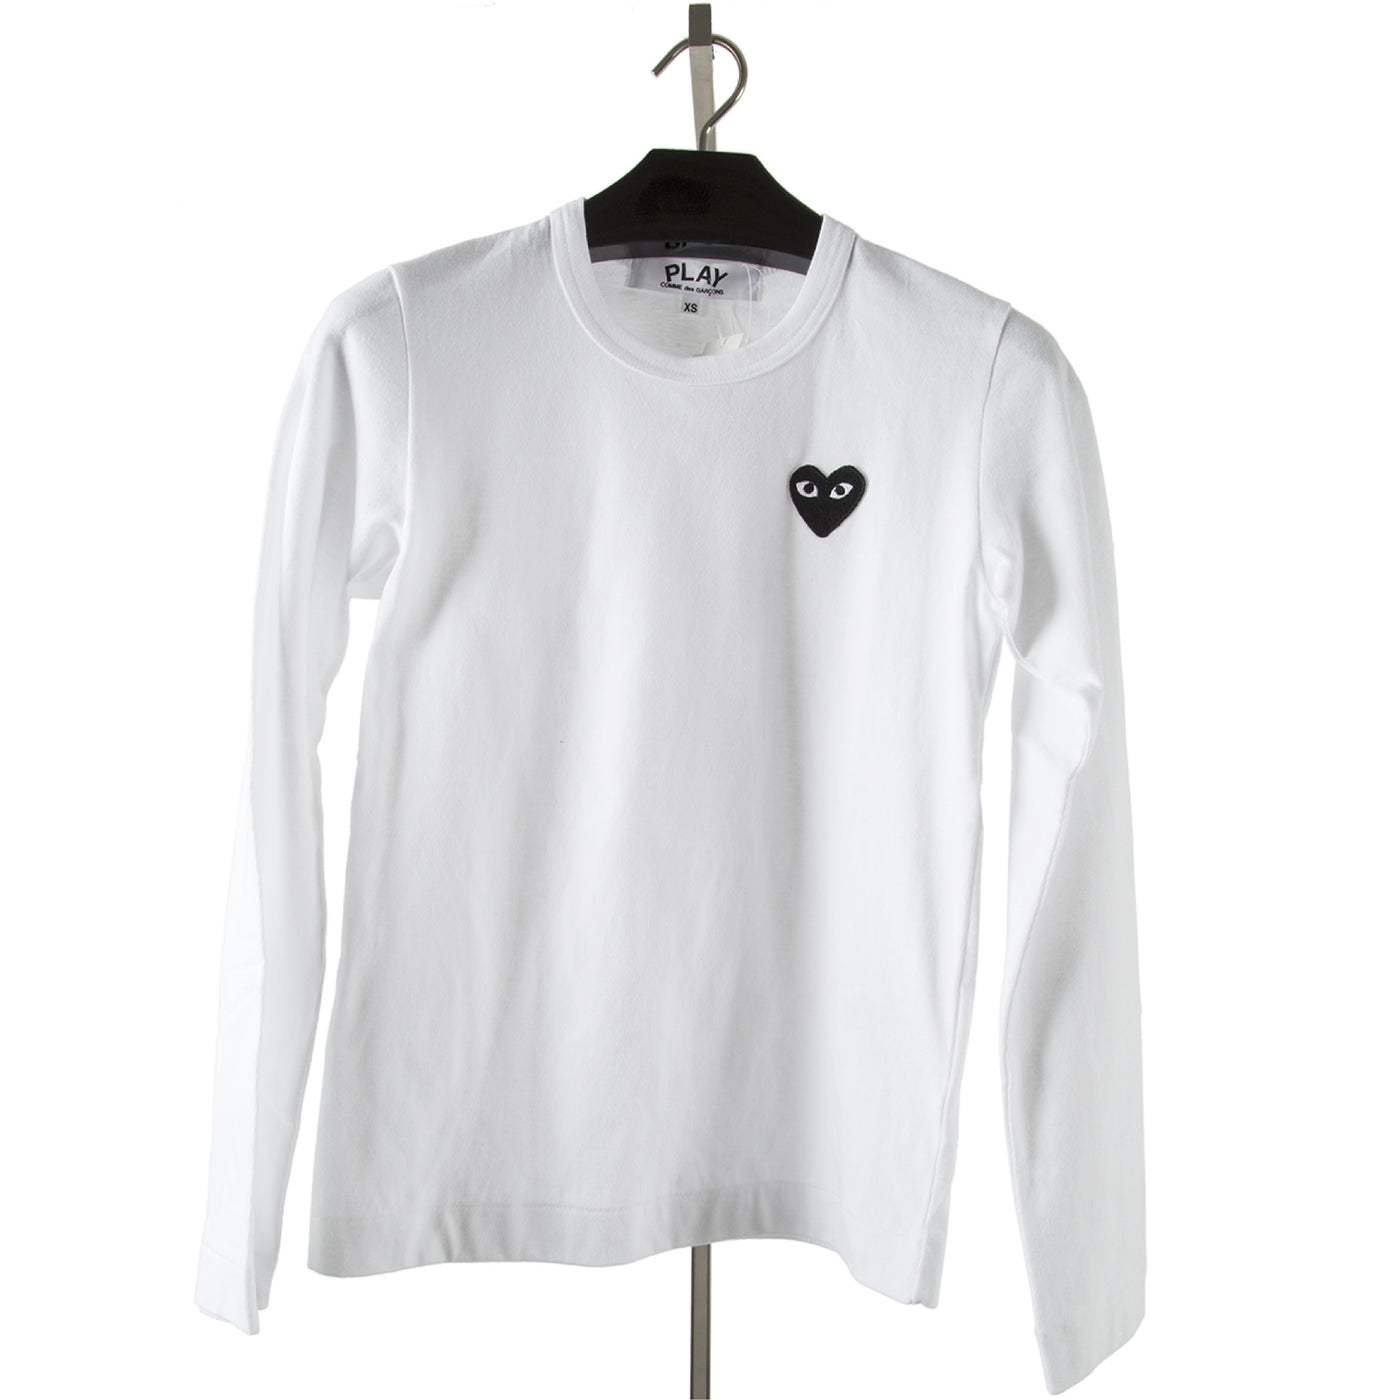 Load image into Gallery viewer, COMME DES GARCONS PLAY LONG-SLEEVE T-SHIRT WHITE